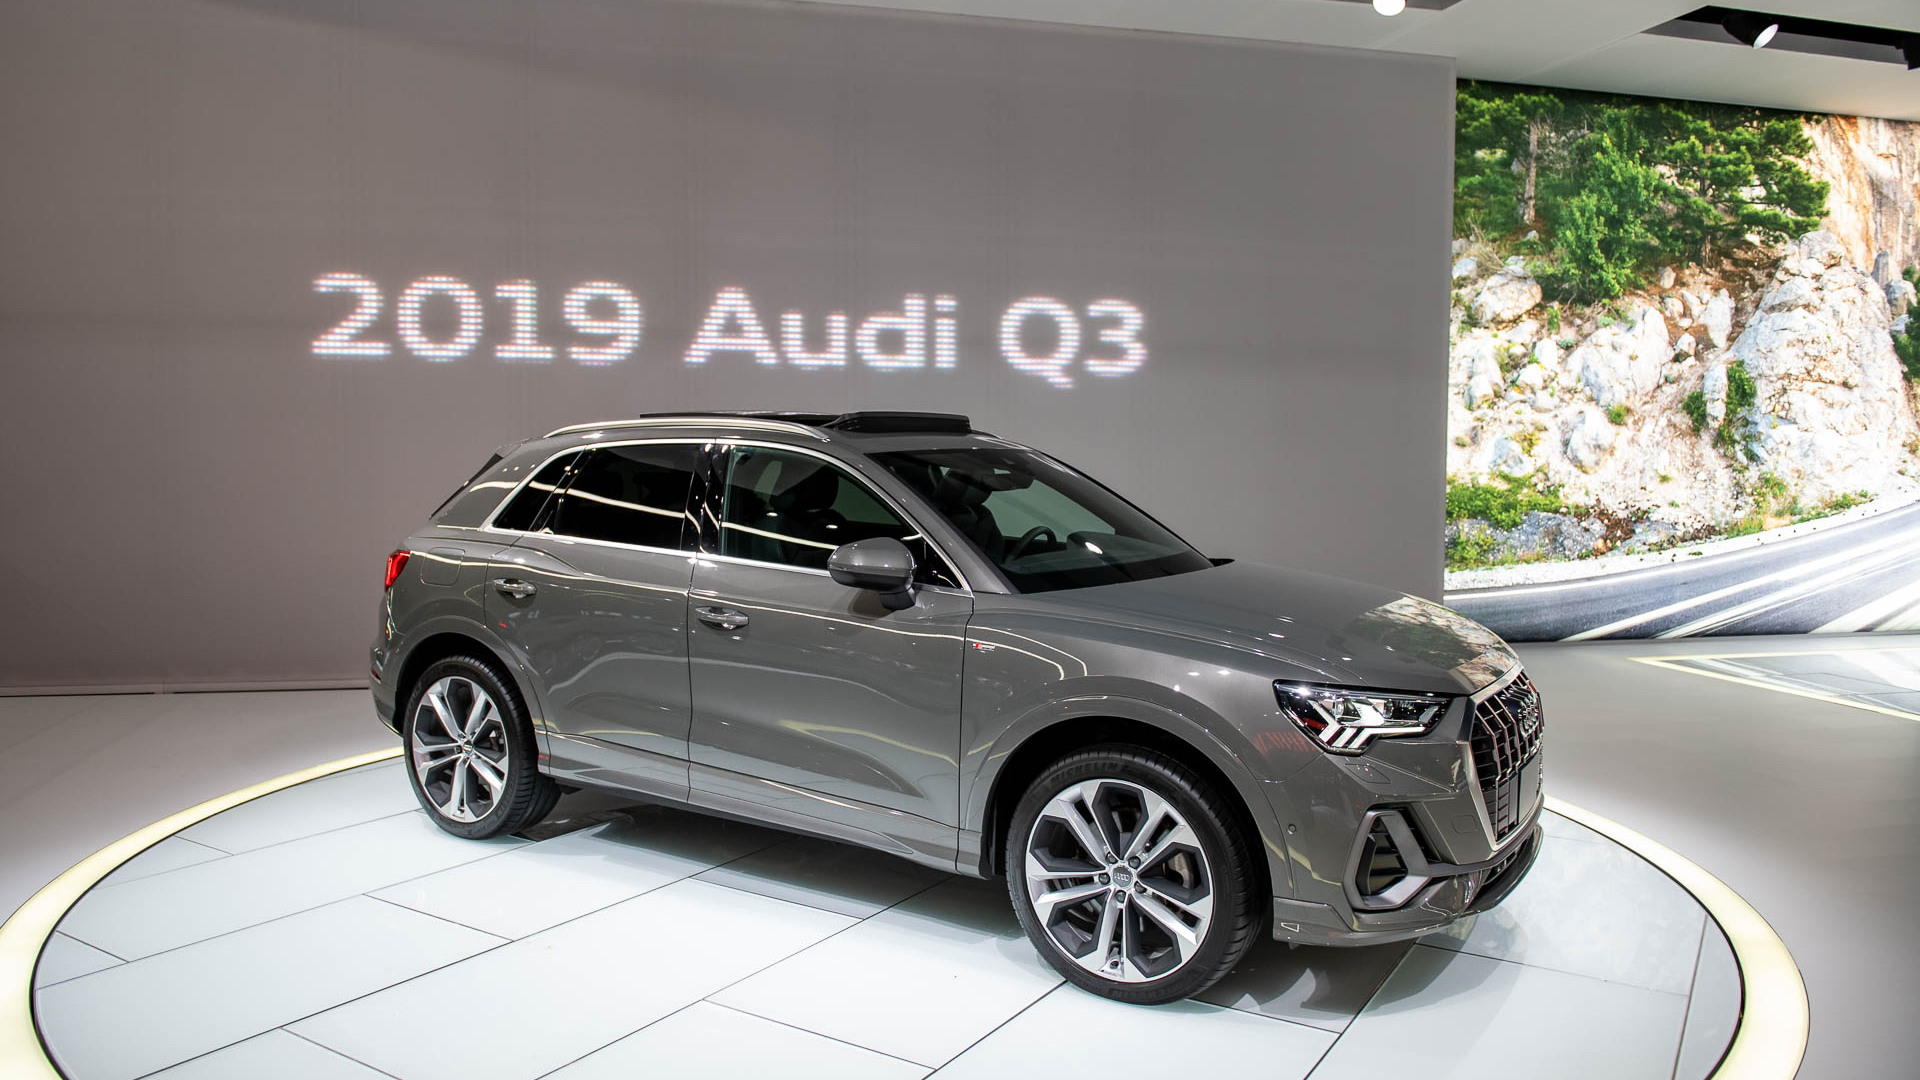 2019 Audi Q3, 2019 New york International Auto Show